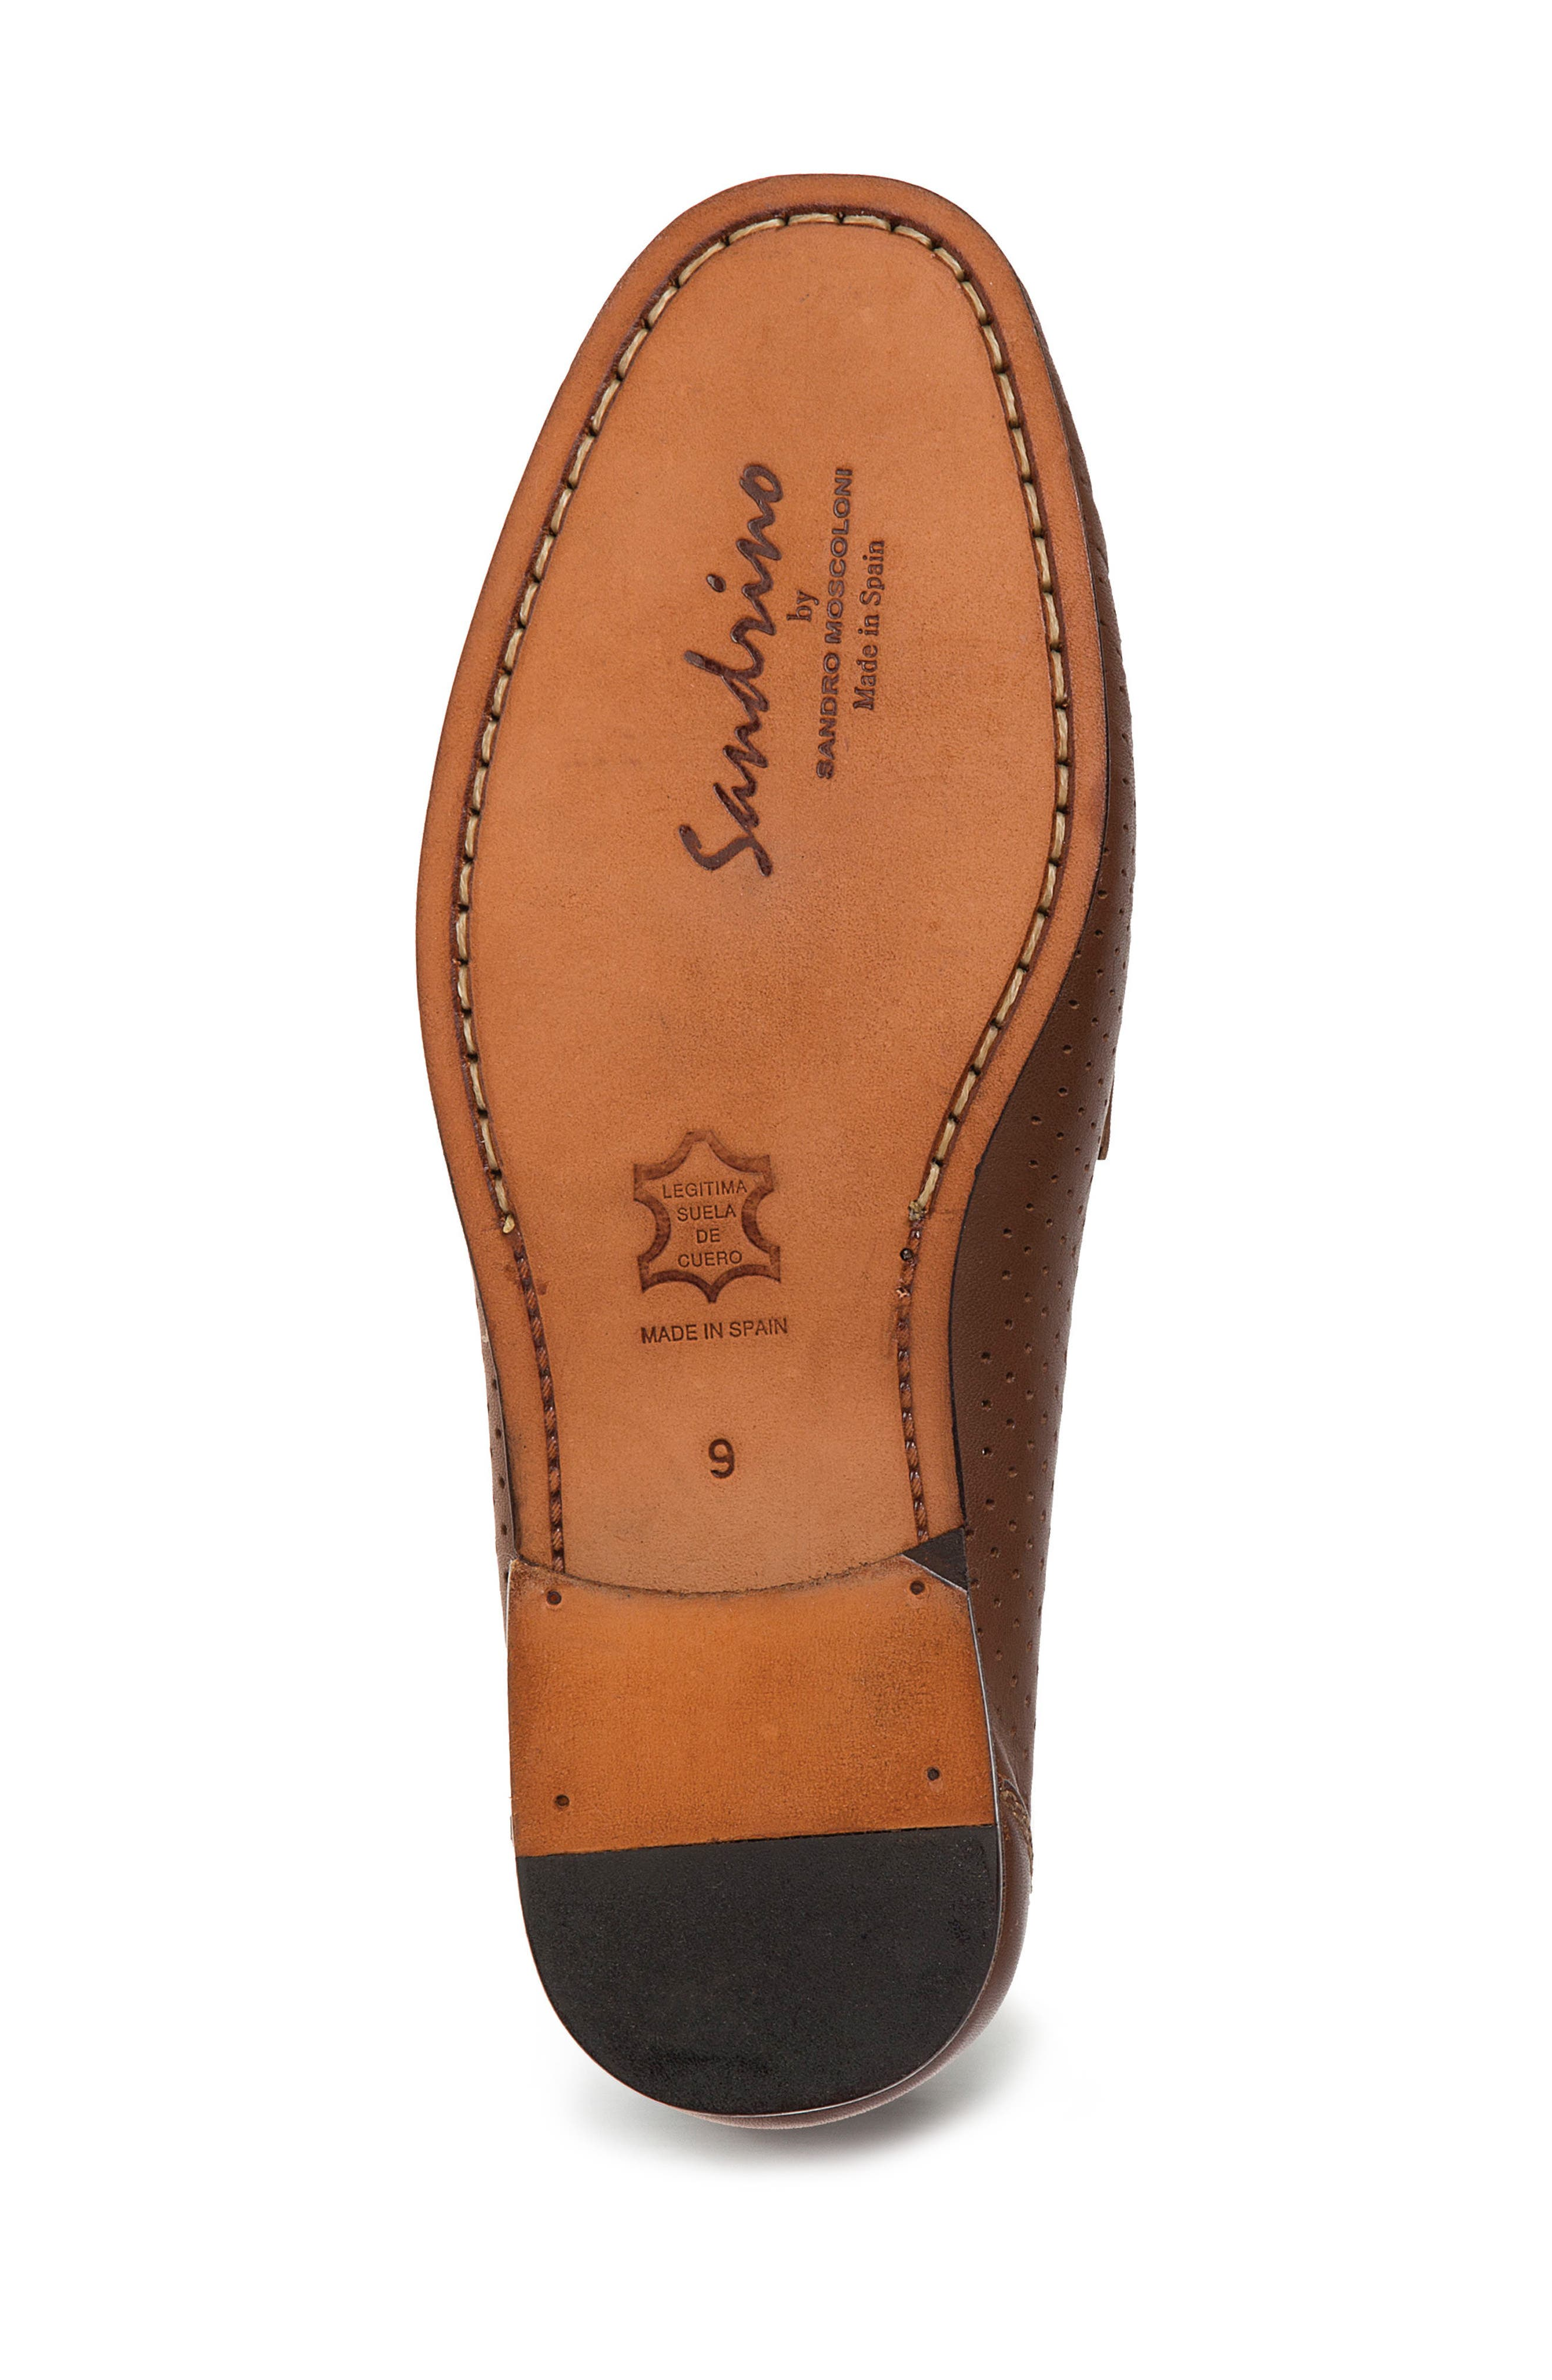 Alcazar Perforated Loafer,                             Alternate thumbnail 4, color,